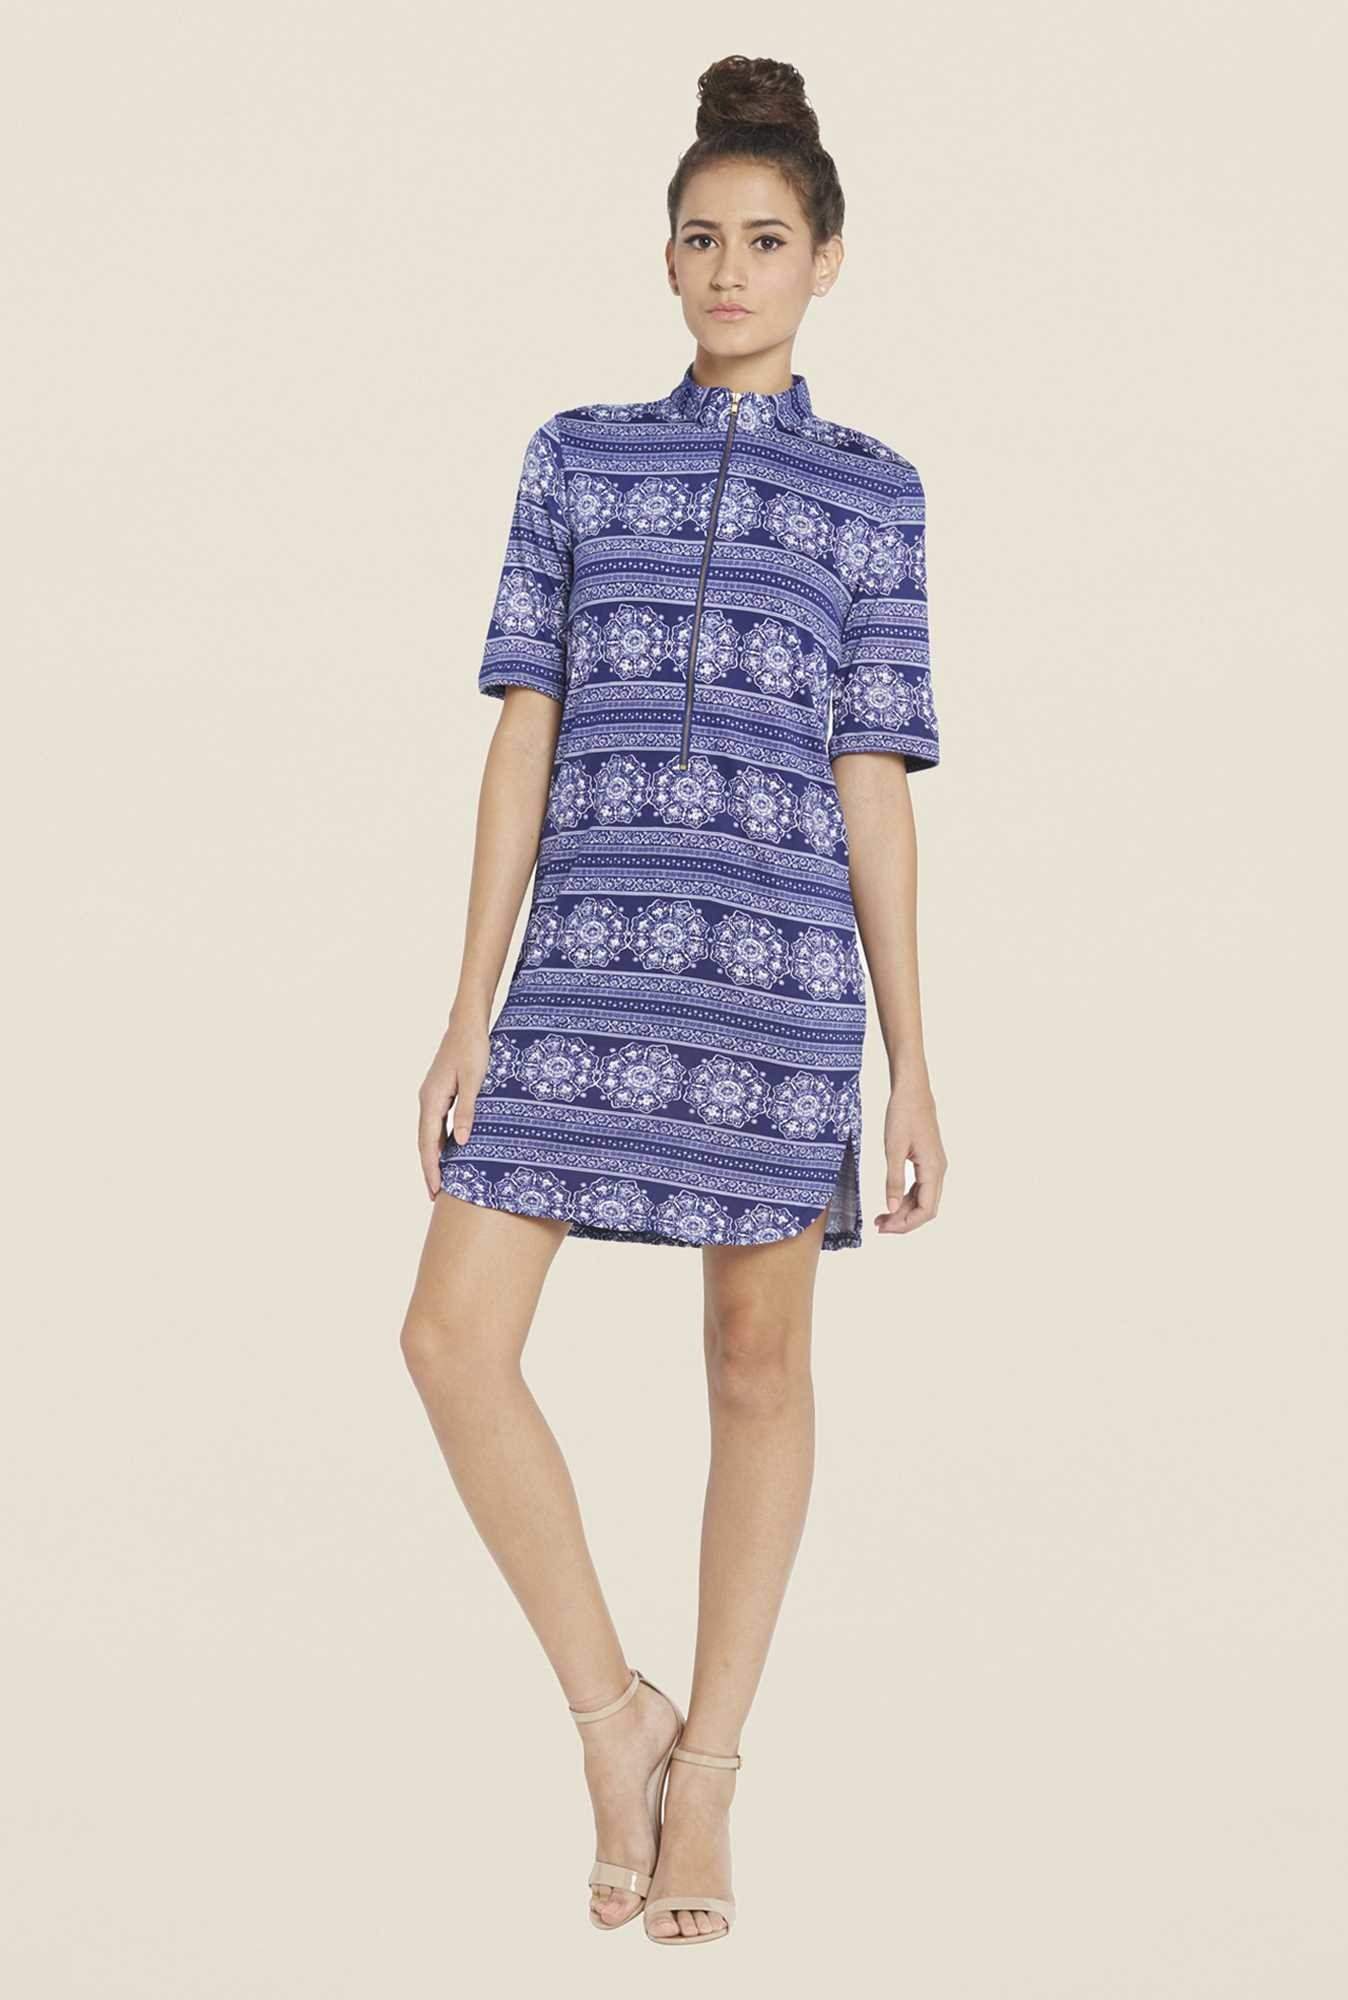 Globus Blue Printed Shift Dress